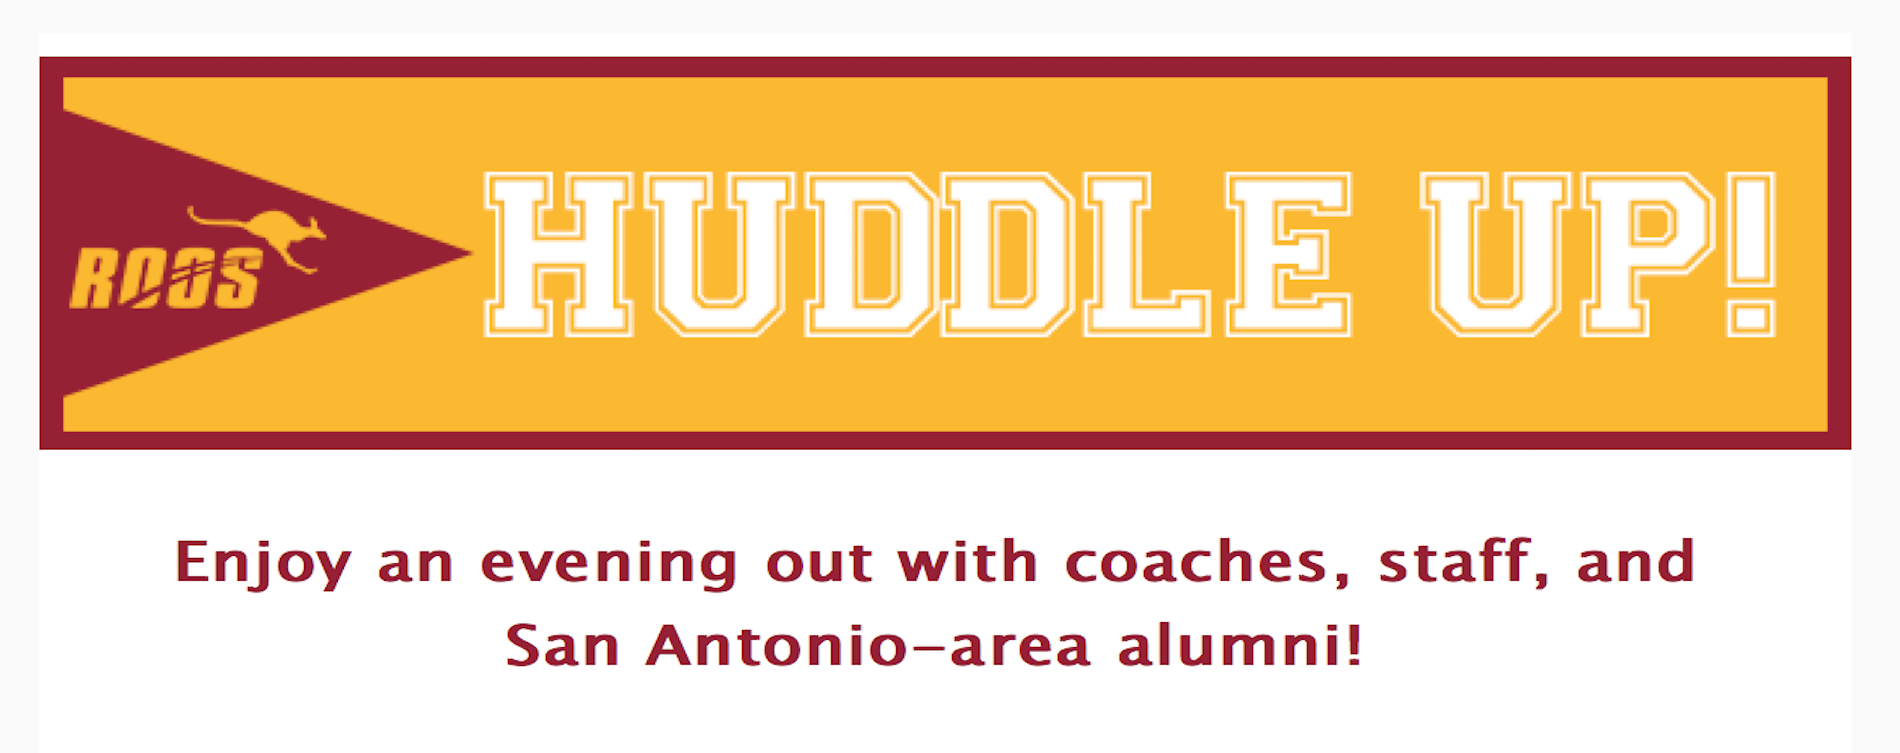 Huddle Up with the Coaches in San Antonio!